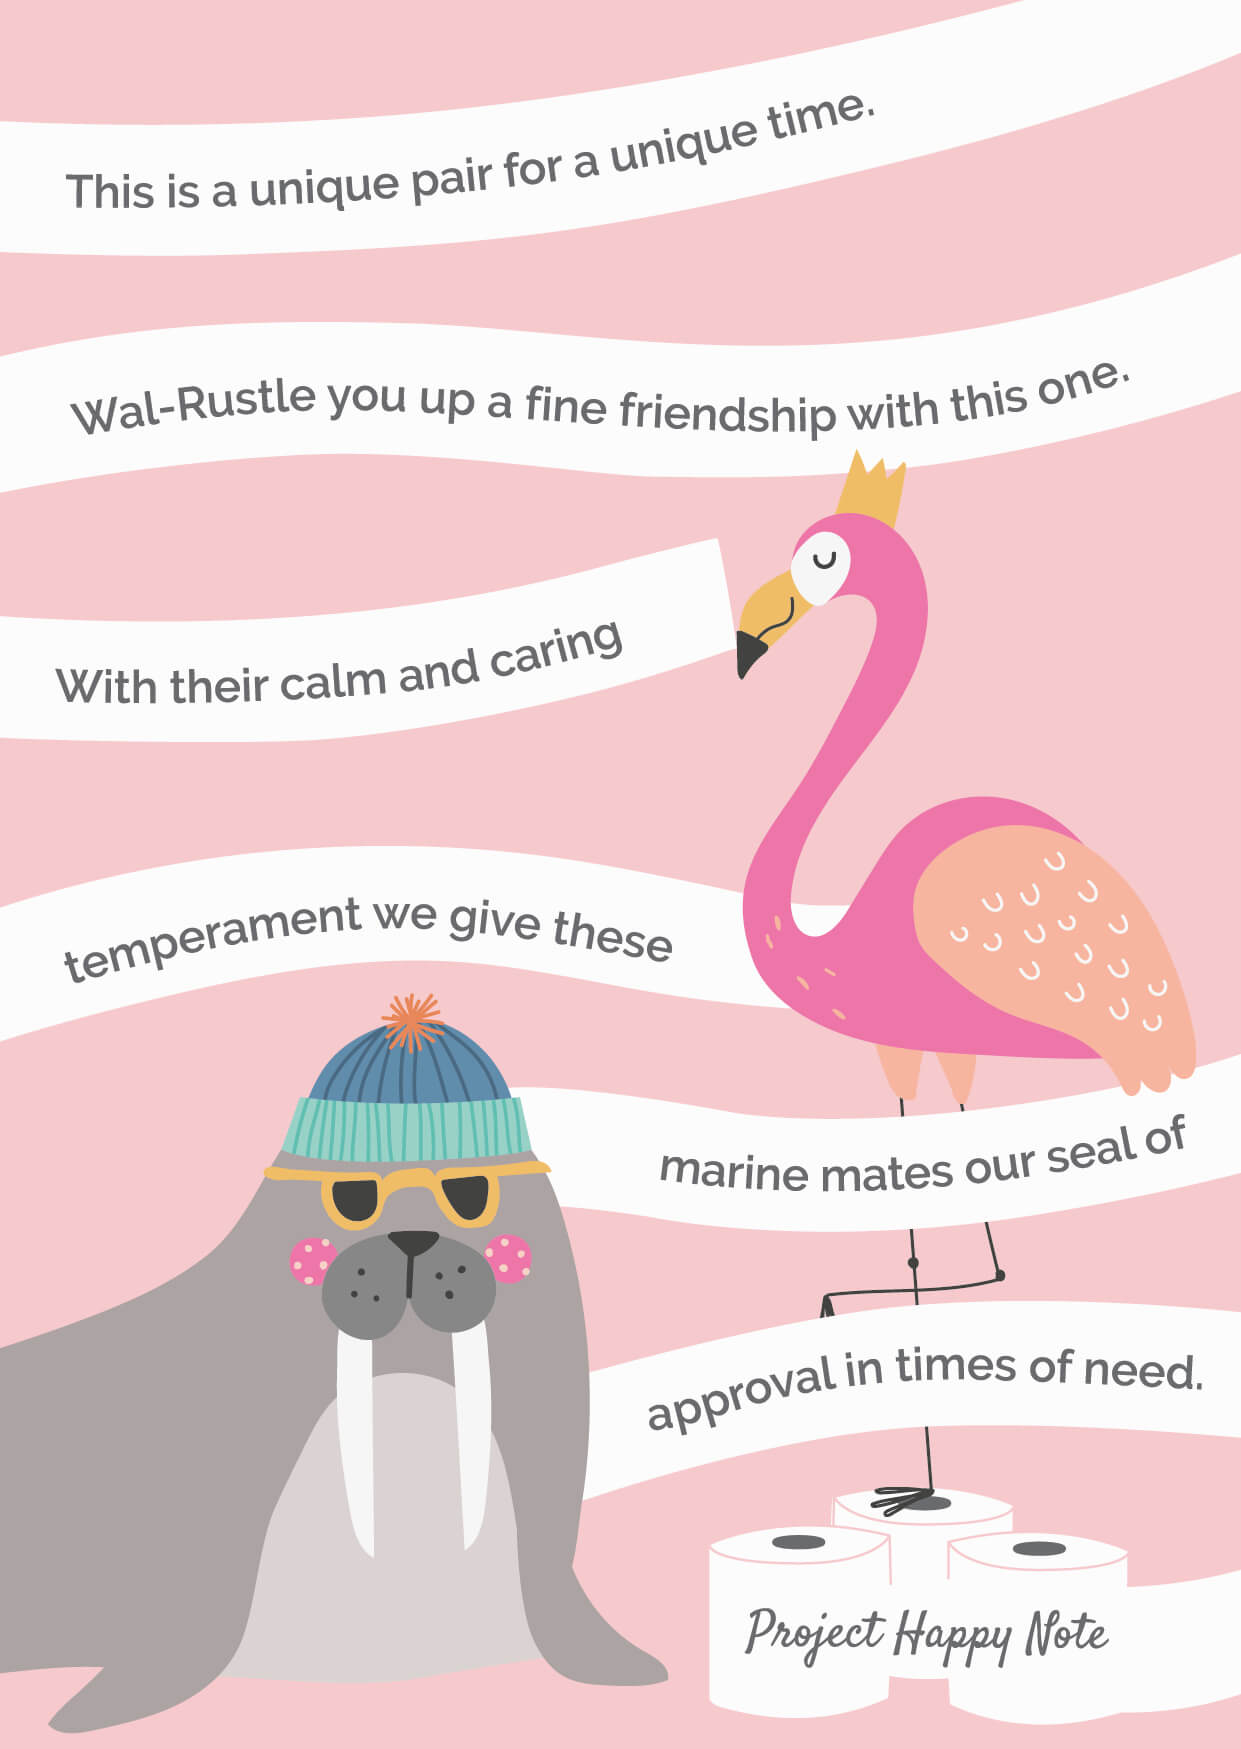 Flamingo and Walrus